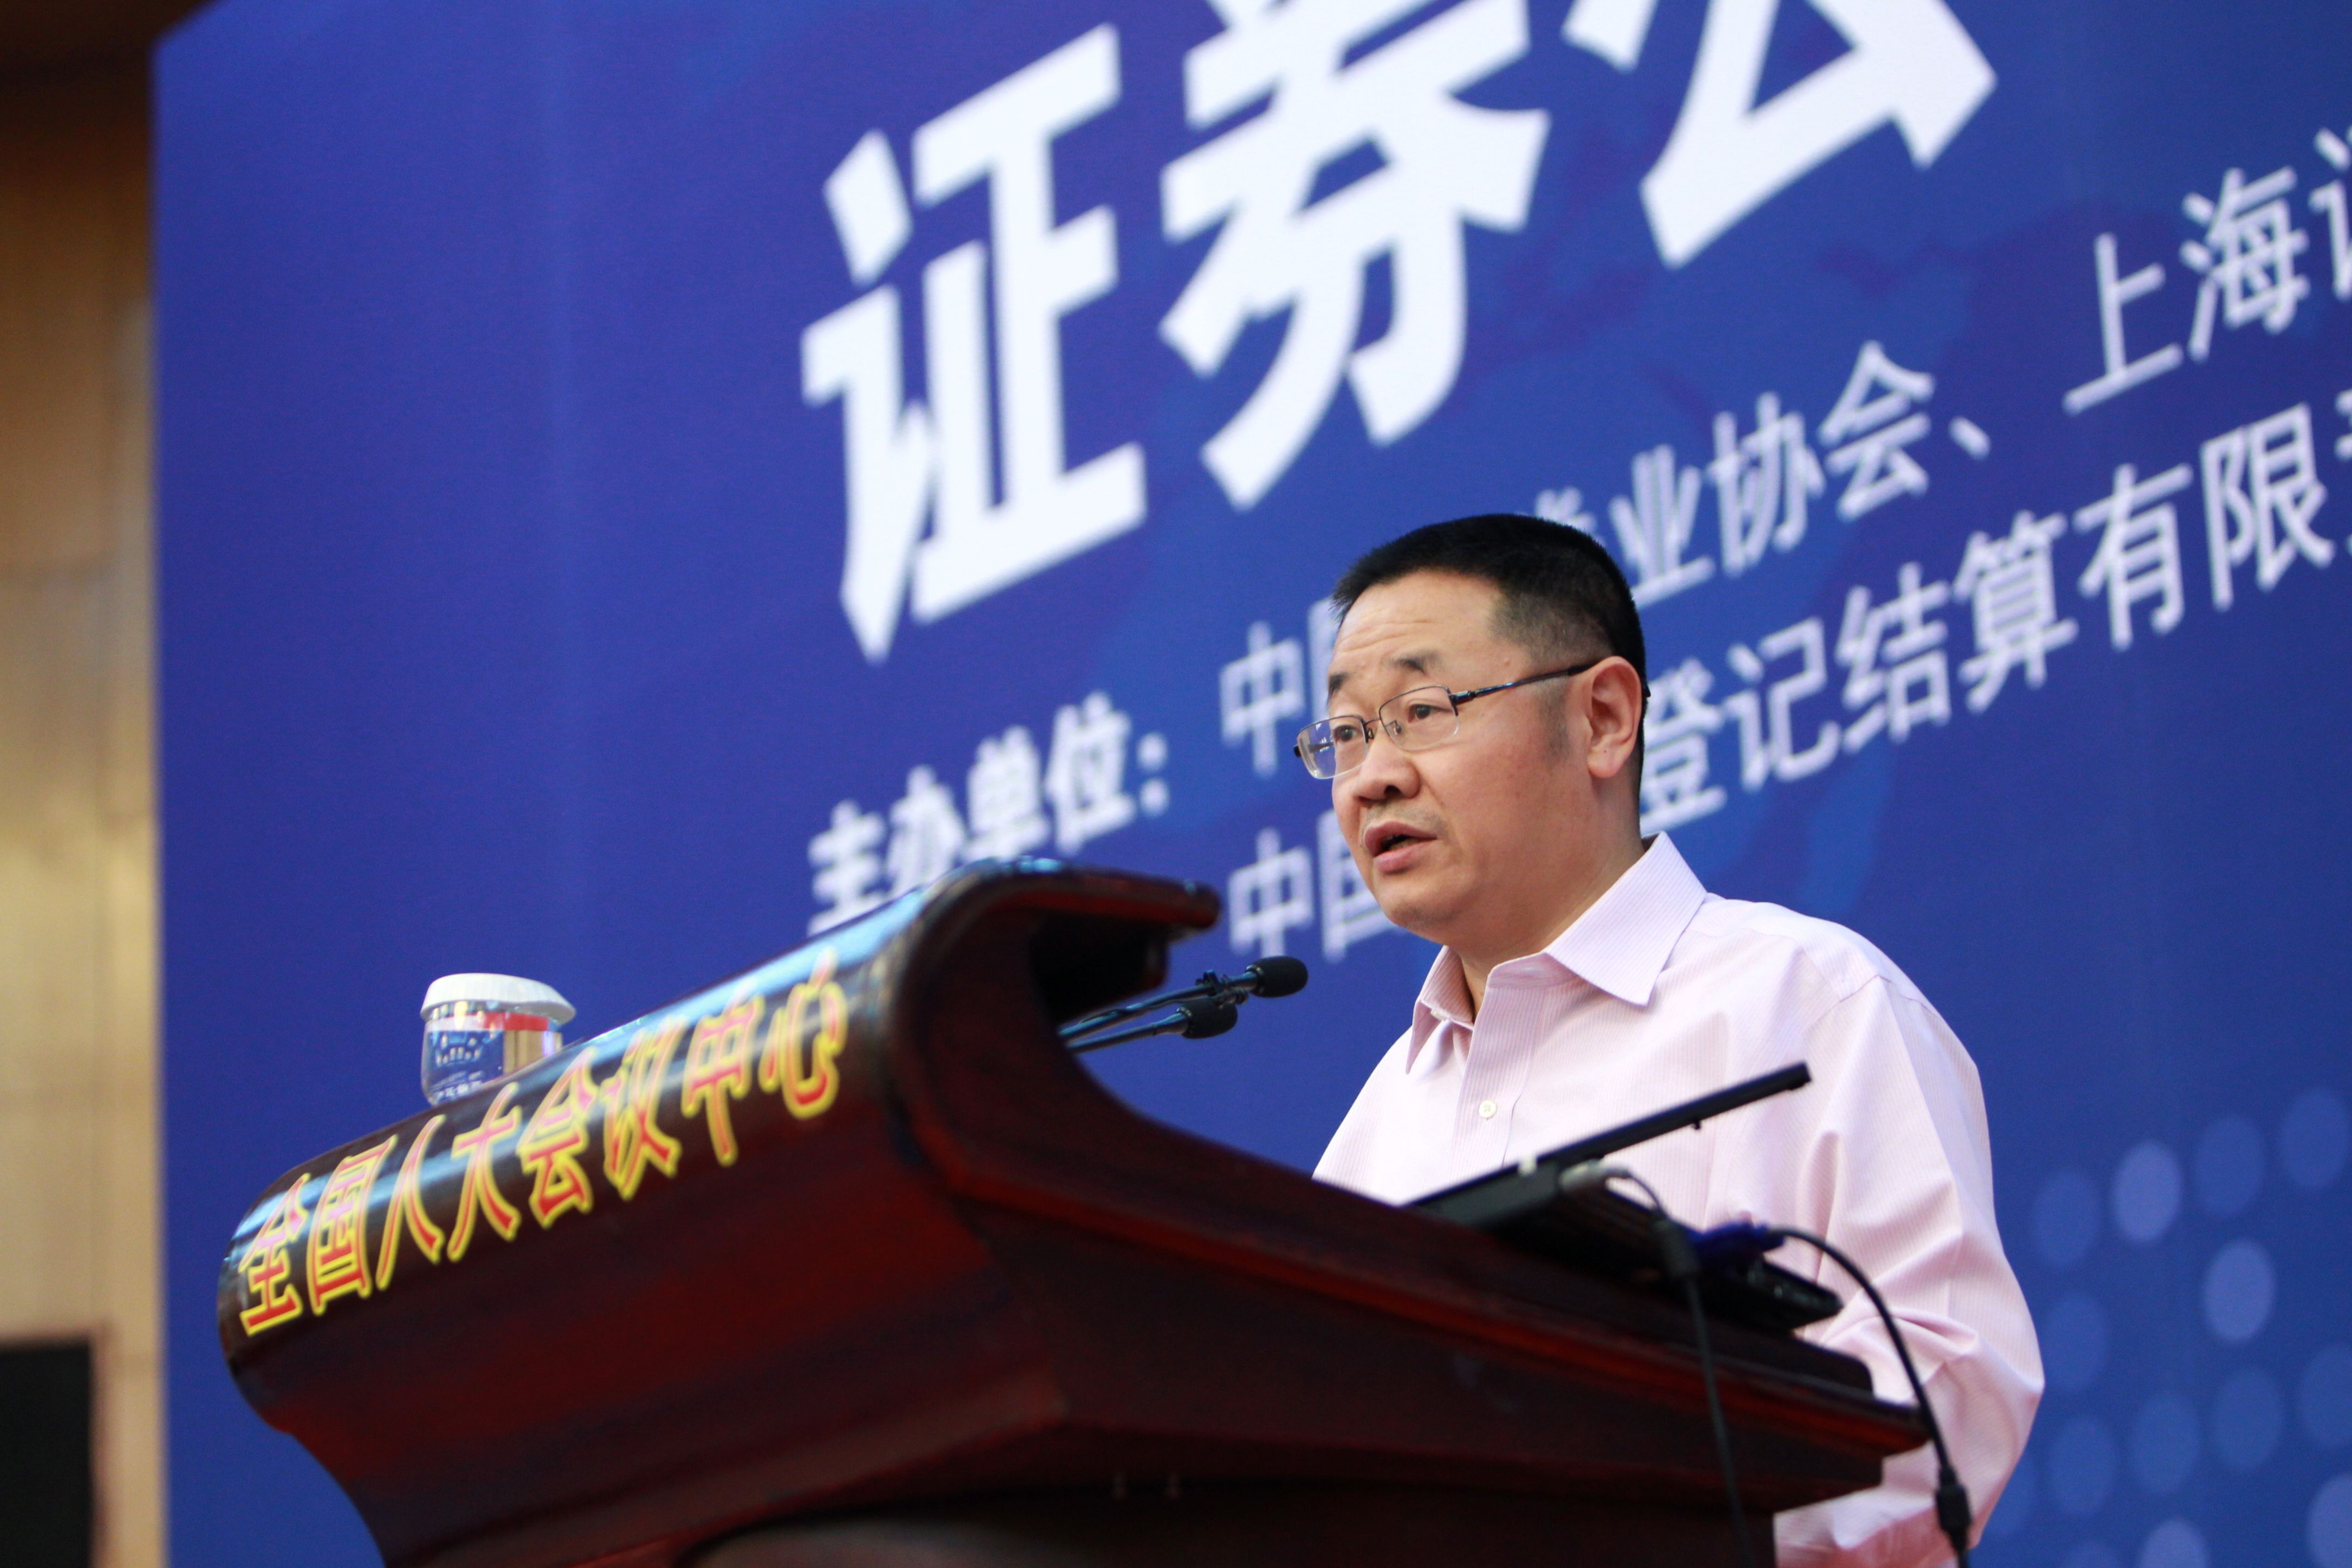 Zhang Yujun, assistant chairman of the China Securities Regulatory Commission, delivers a speech during a conference in Beijing on May 8, 2013